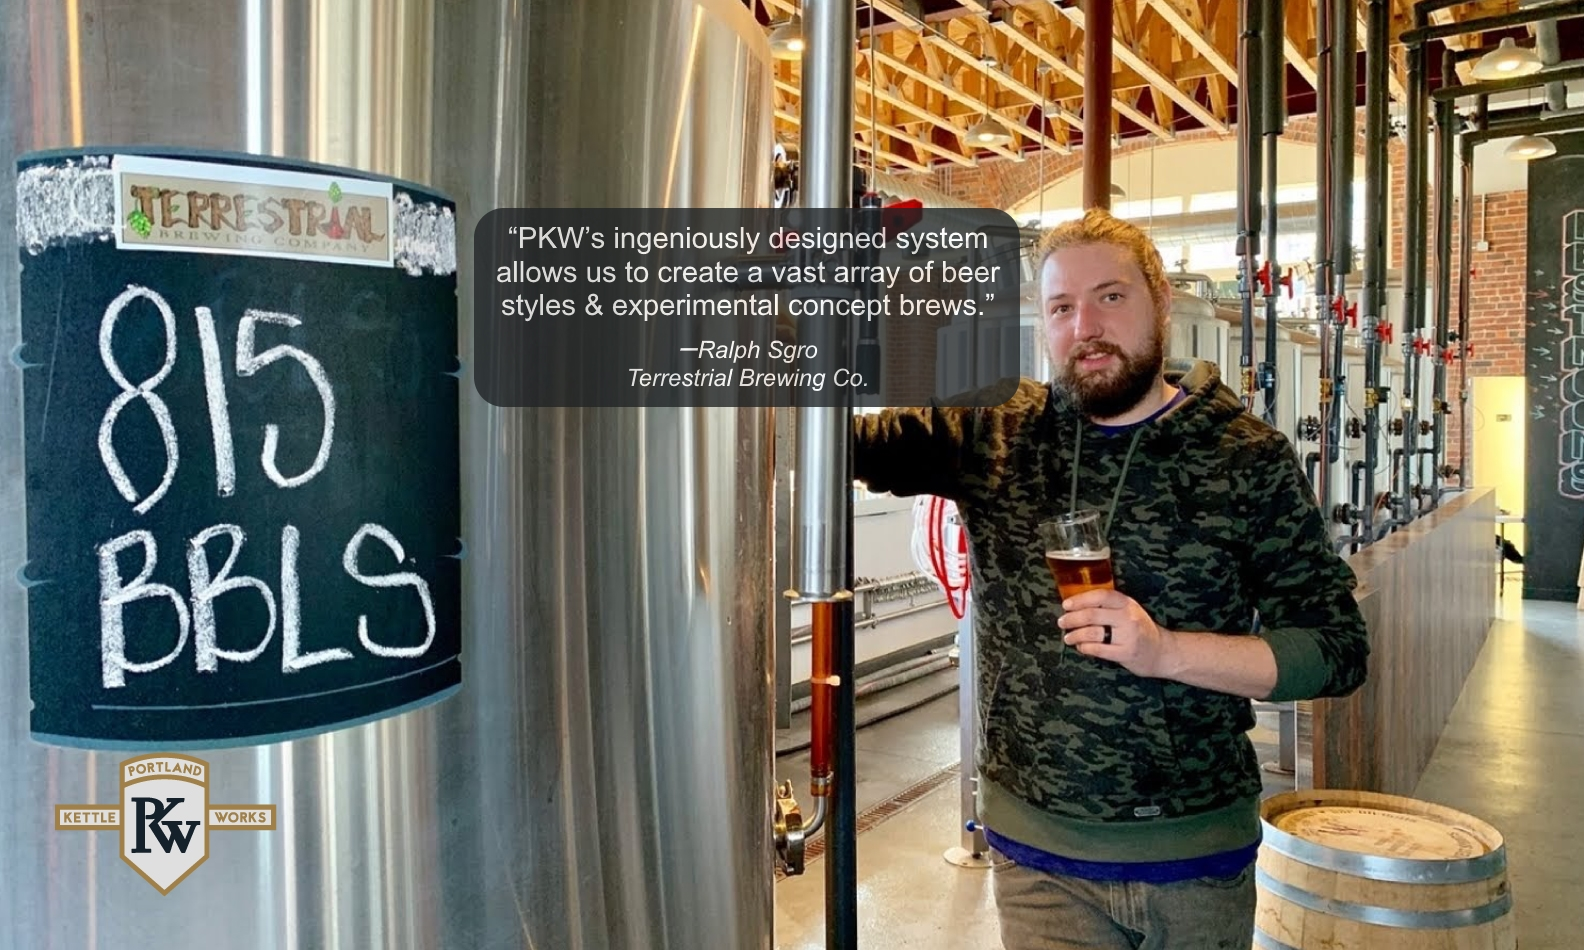 PKW Brewing Equipment at Terrestrial Brewery & Client Testimonial